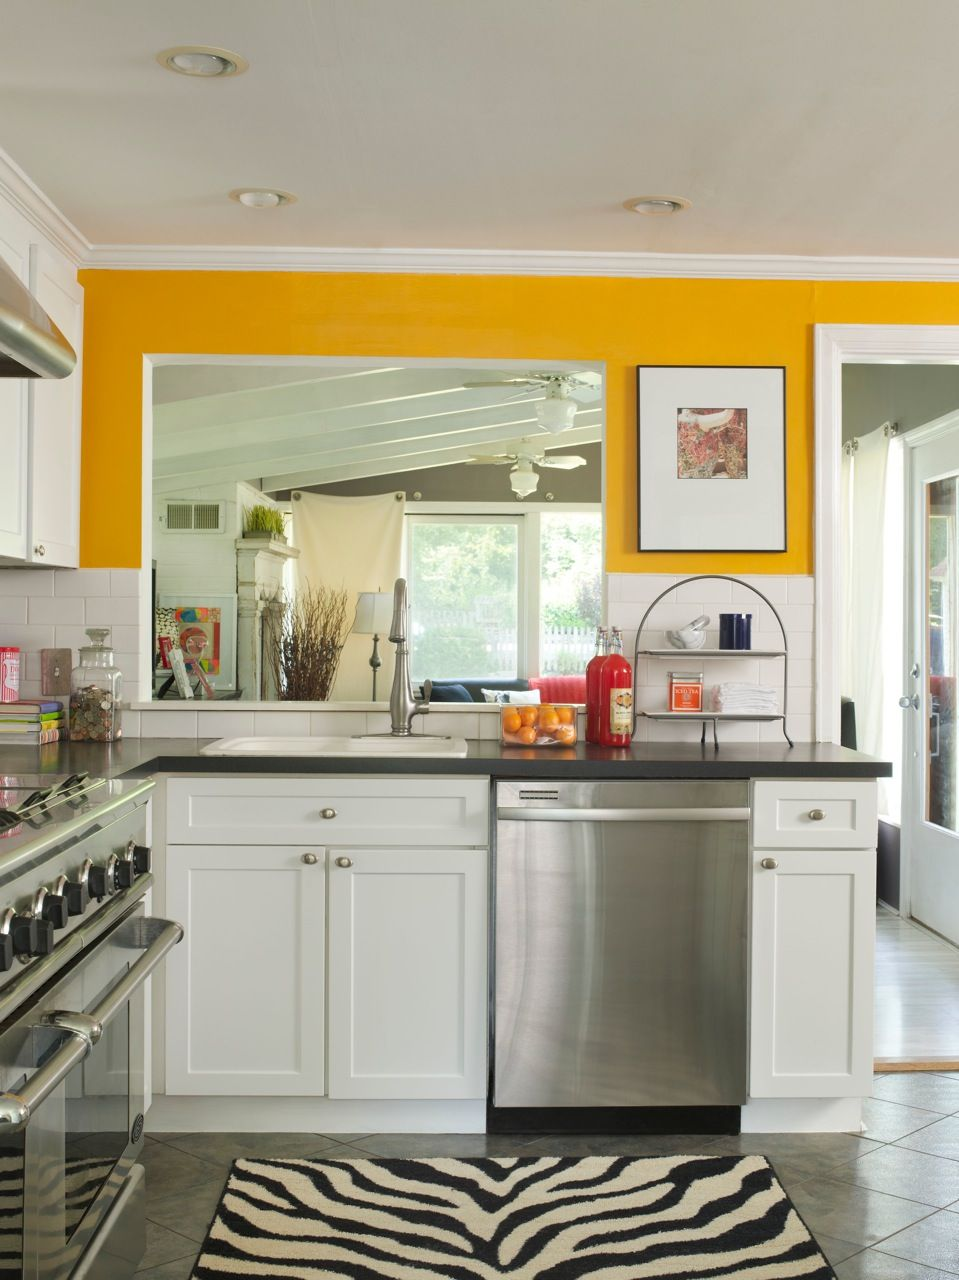 Amazing Tiny House Kitchen Design Ideas For You Small Apartment Remodel On A Budget